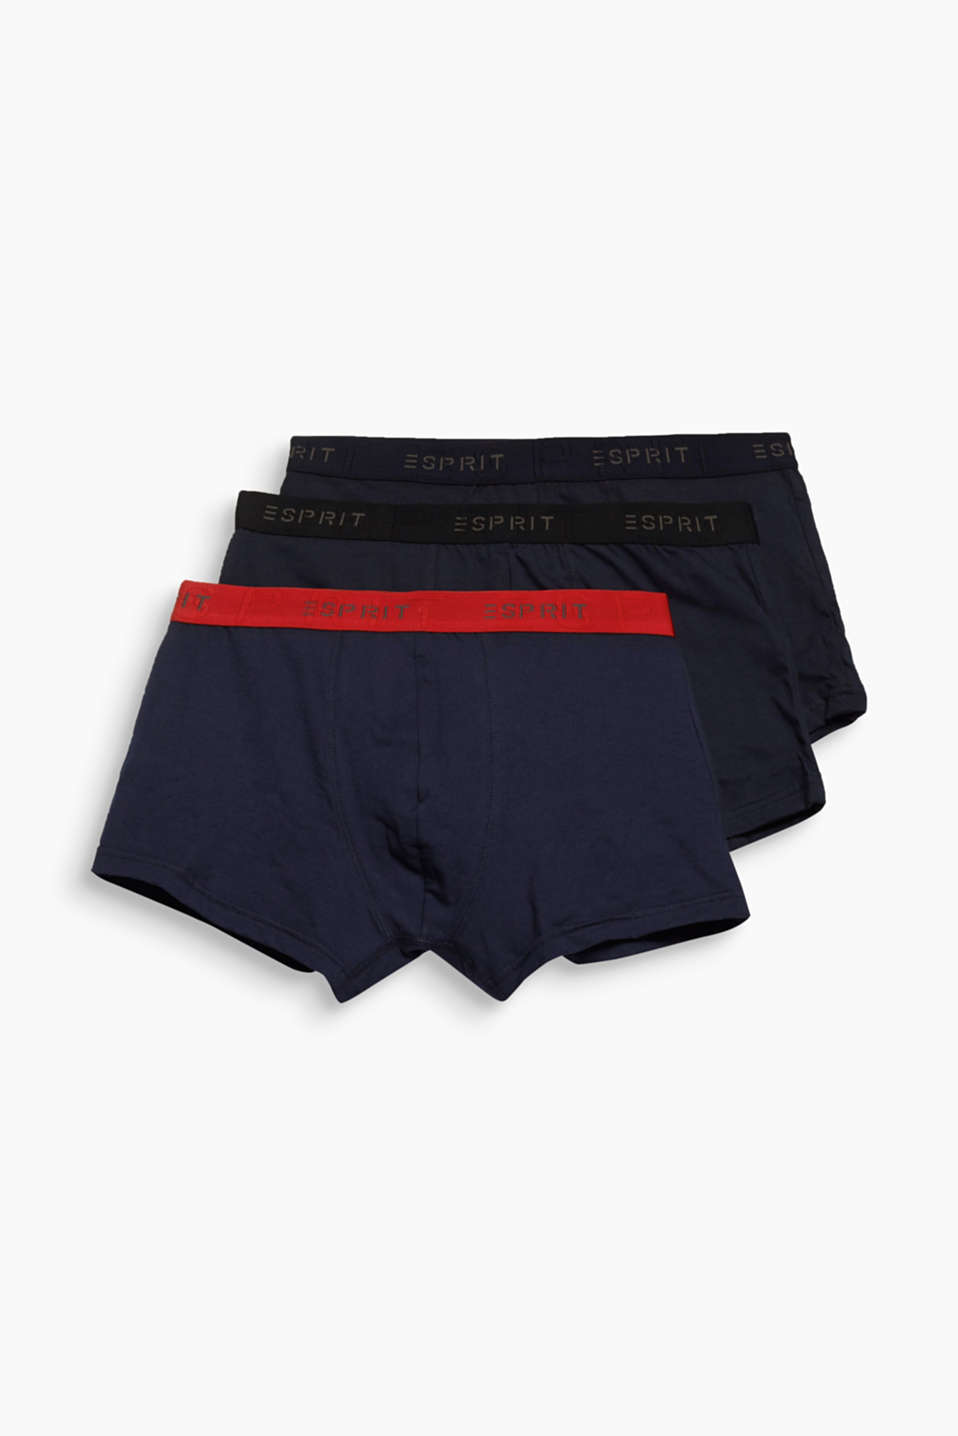 Esprit - 3 pack of stretch, contrasting hipster shorts